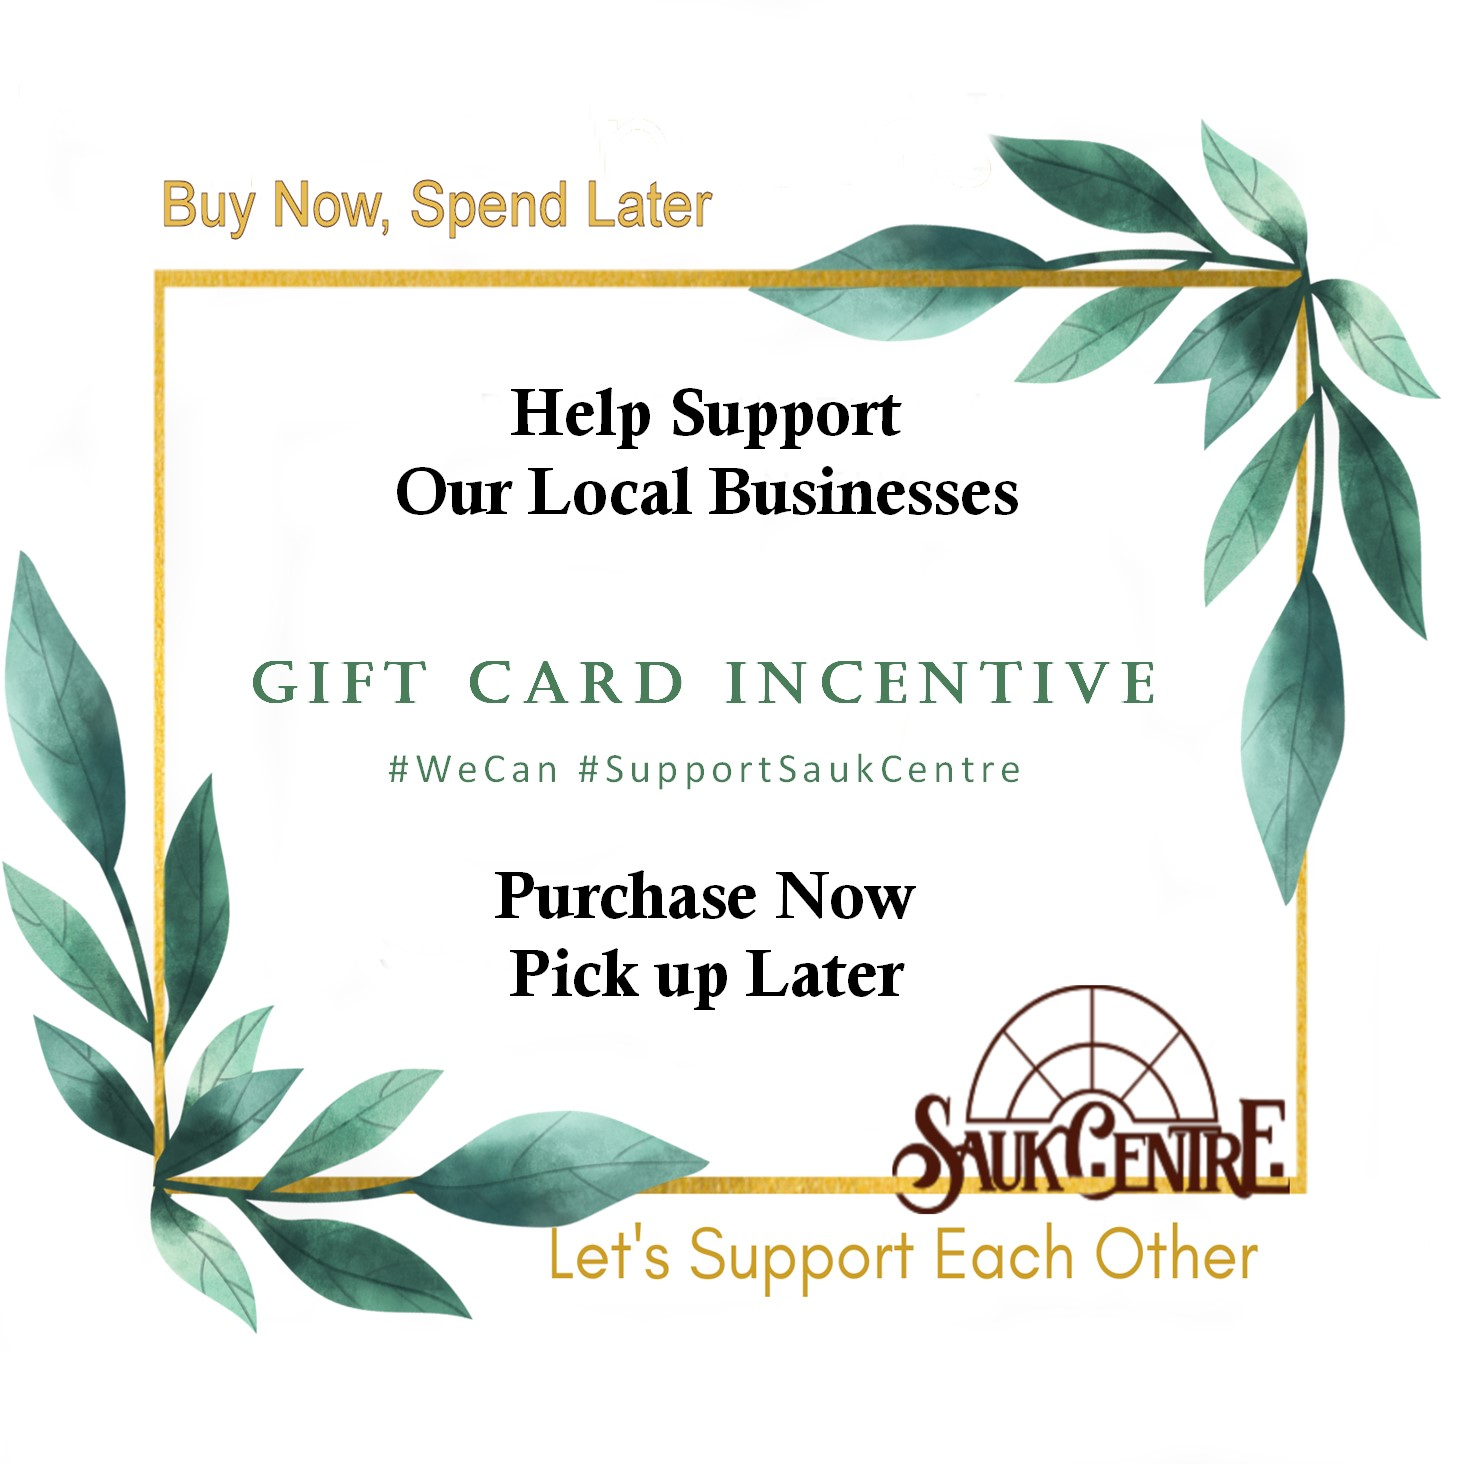 Gift Card Incentive